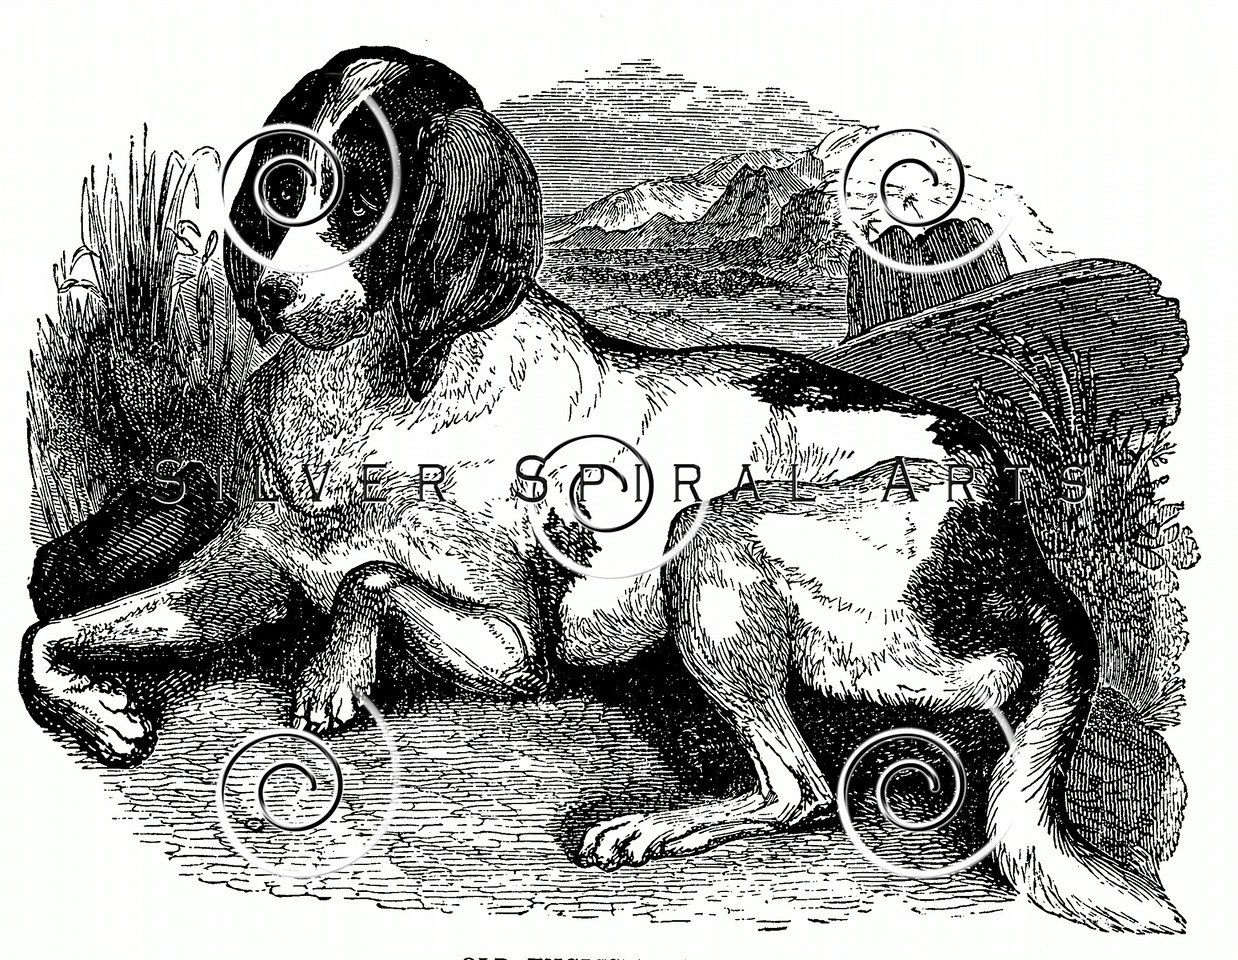 Vintage Hound Dogs Illustration - 1800s Dog Images